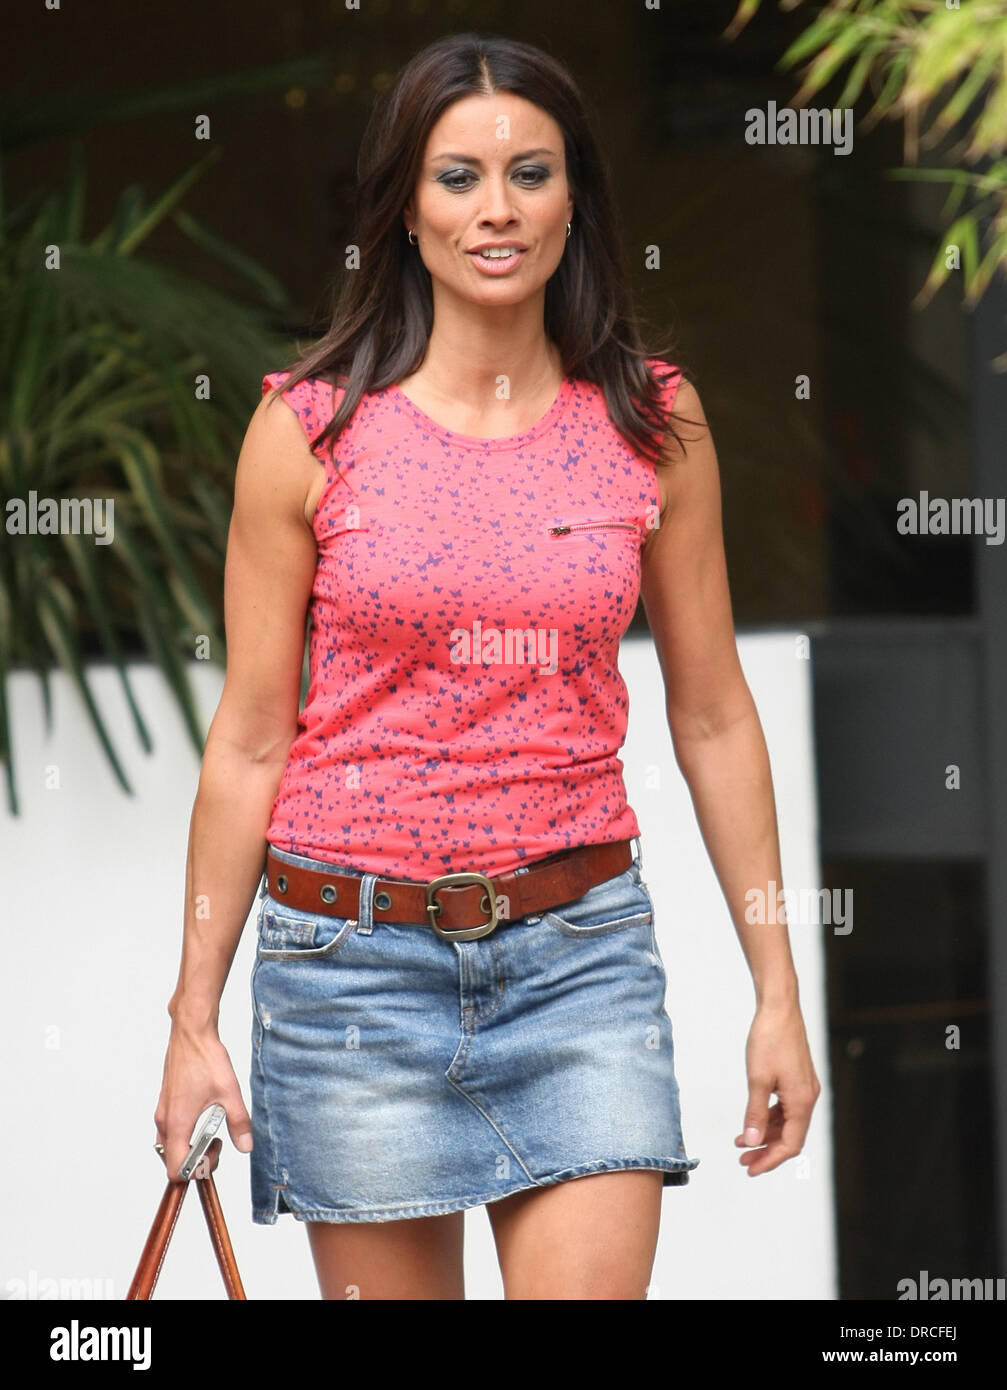 Young Melanie Sykes nudes (96 photos), Tits, Paparazzi, Selfie, cleavage 2015